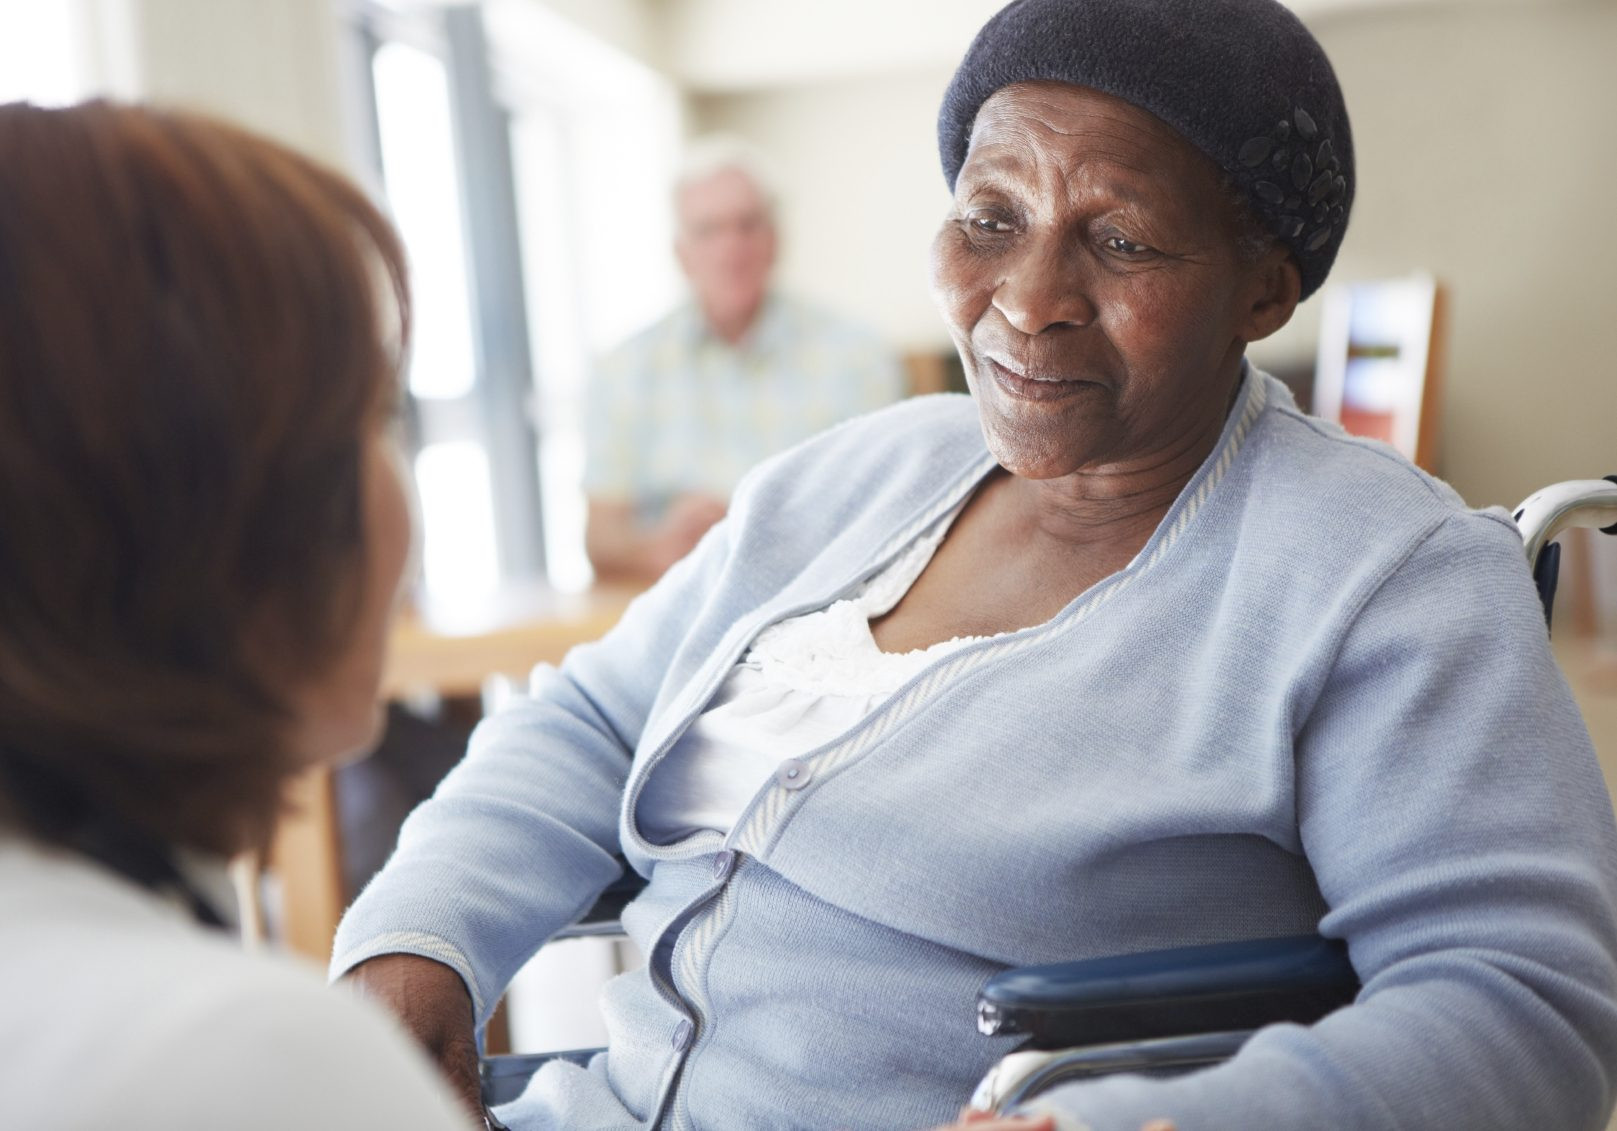 A caregiver talking to a wheelchair-bound patient